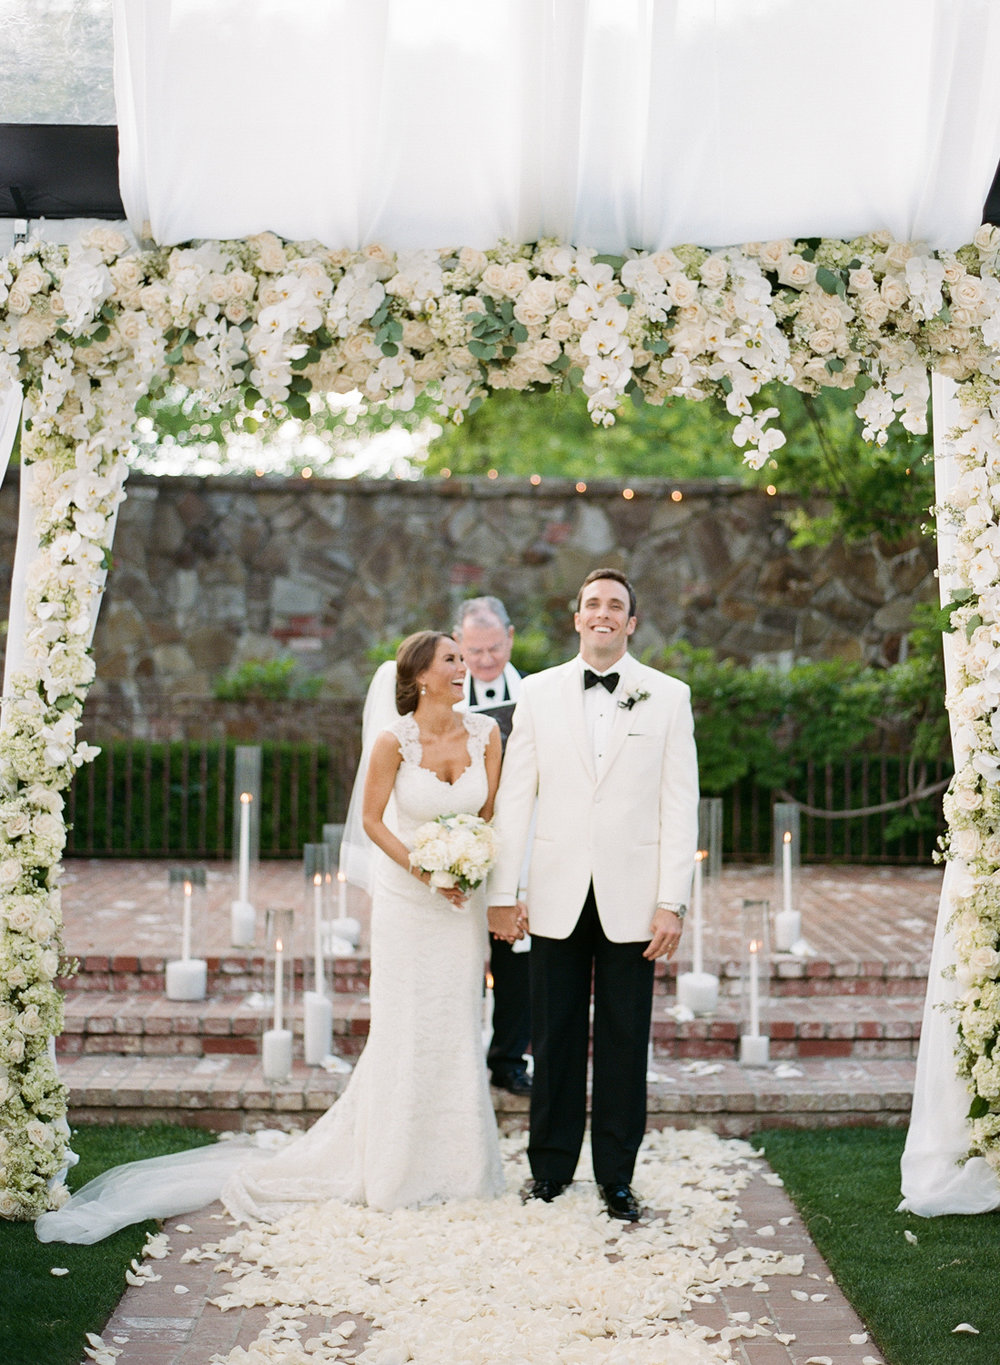 Bride and groom walk up the aisle just married after ceremony in Yountville, Napa Valley; Sylvie Gil Photography